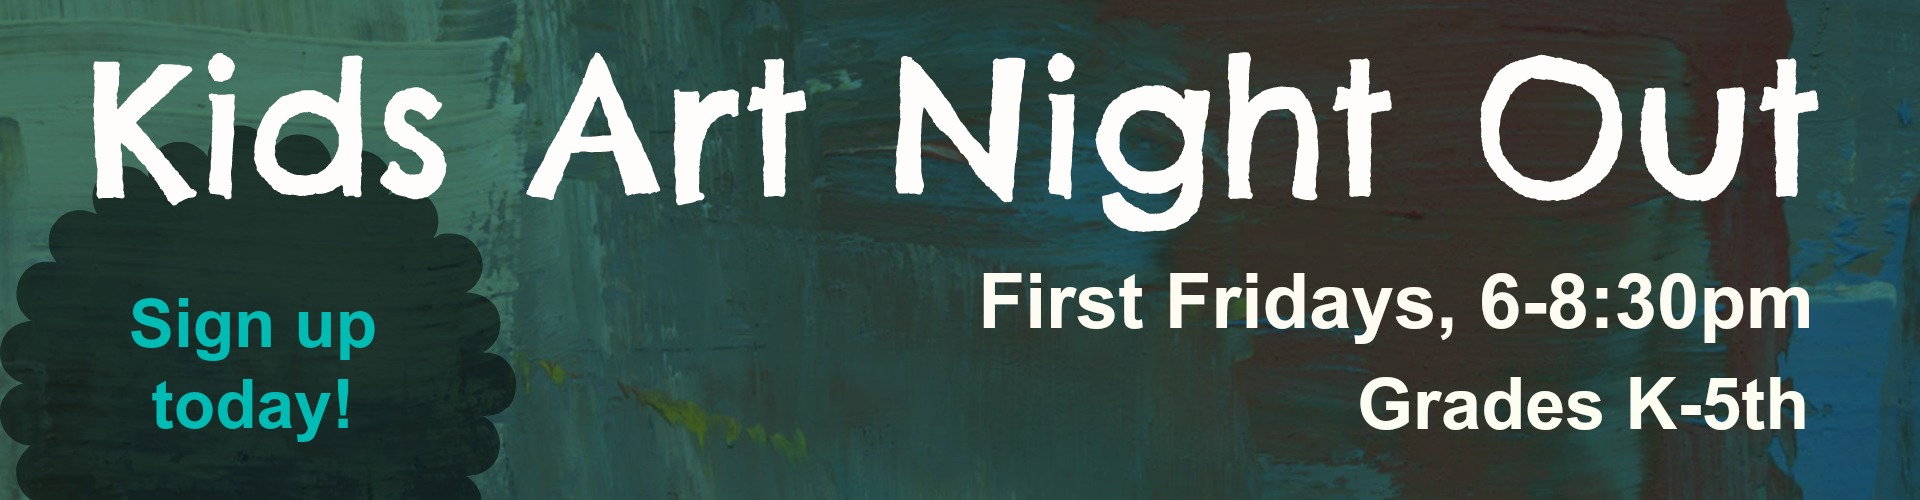 Kids Art Night Out - First Friday Art Workshops